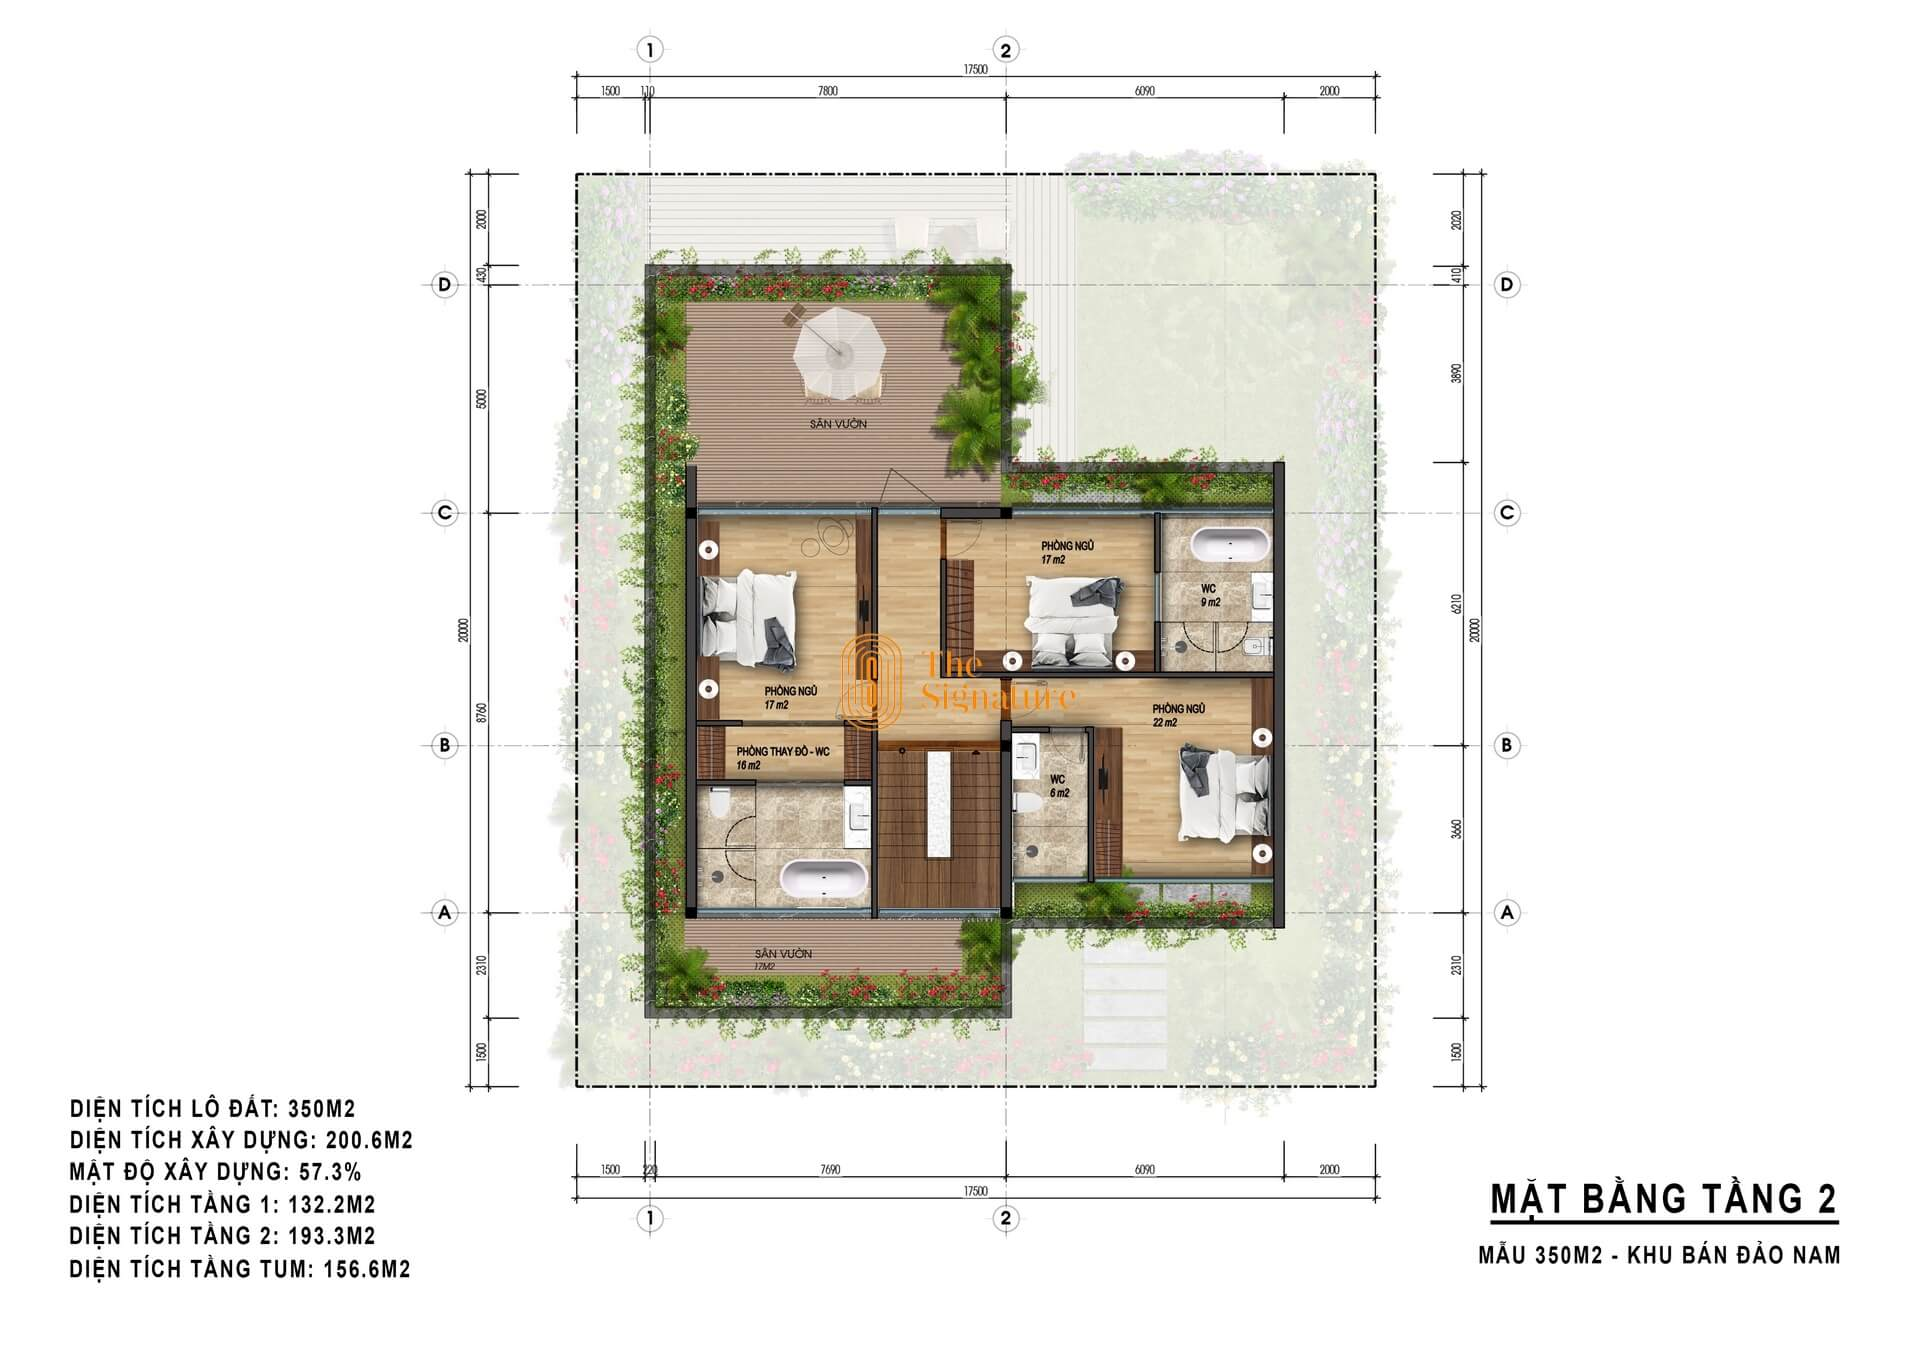 mặt bằng tầng 2 biệt thự the signature flamingo 350m2